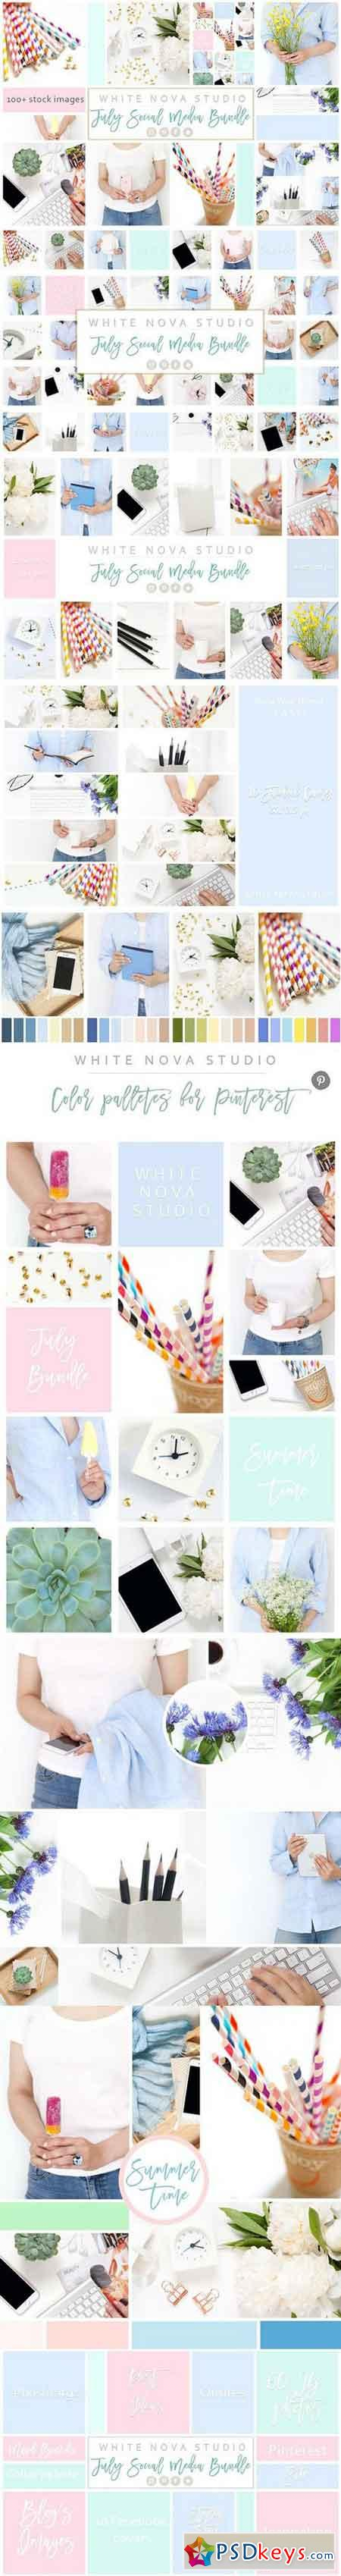 Big Social Media Bundle #1 1659969